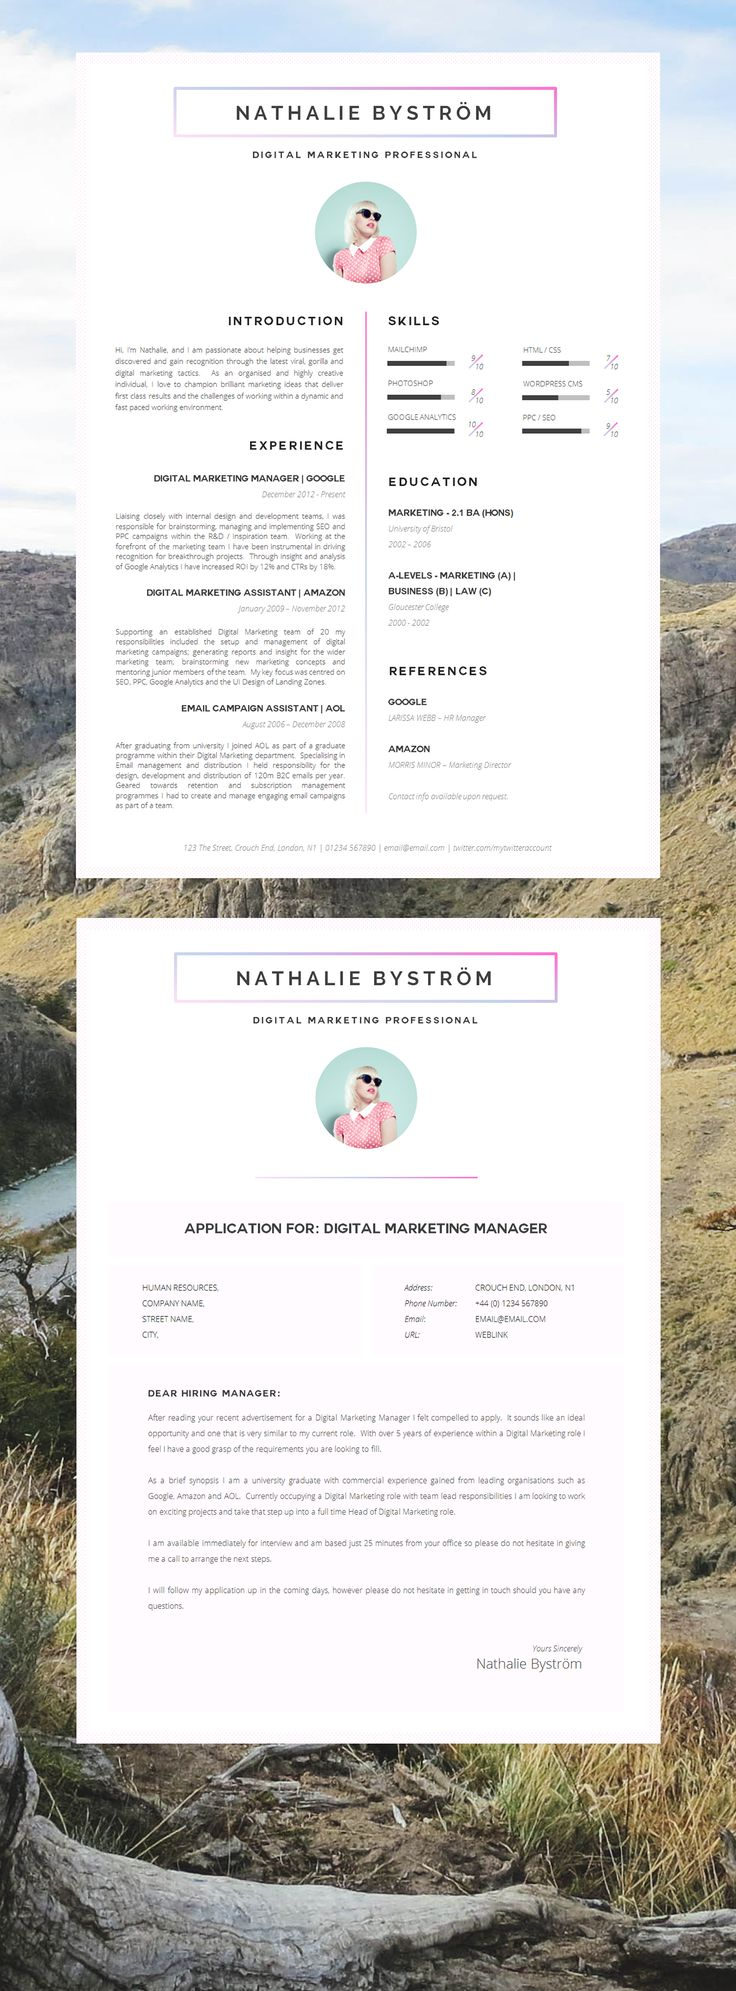 Lovely 10 Best Resumes Thin 10 Steps To Creating An Effective Resume Round 100 Free Resume 1099 Employee Contract Template Youthful 1300 Resume Government Samples Selection Criteria Dark15 Minute Schedule Template 25  Best Ideas About Resume Templates On Pinterest | Layout Cv ..